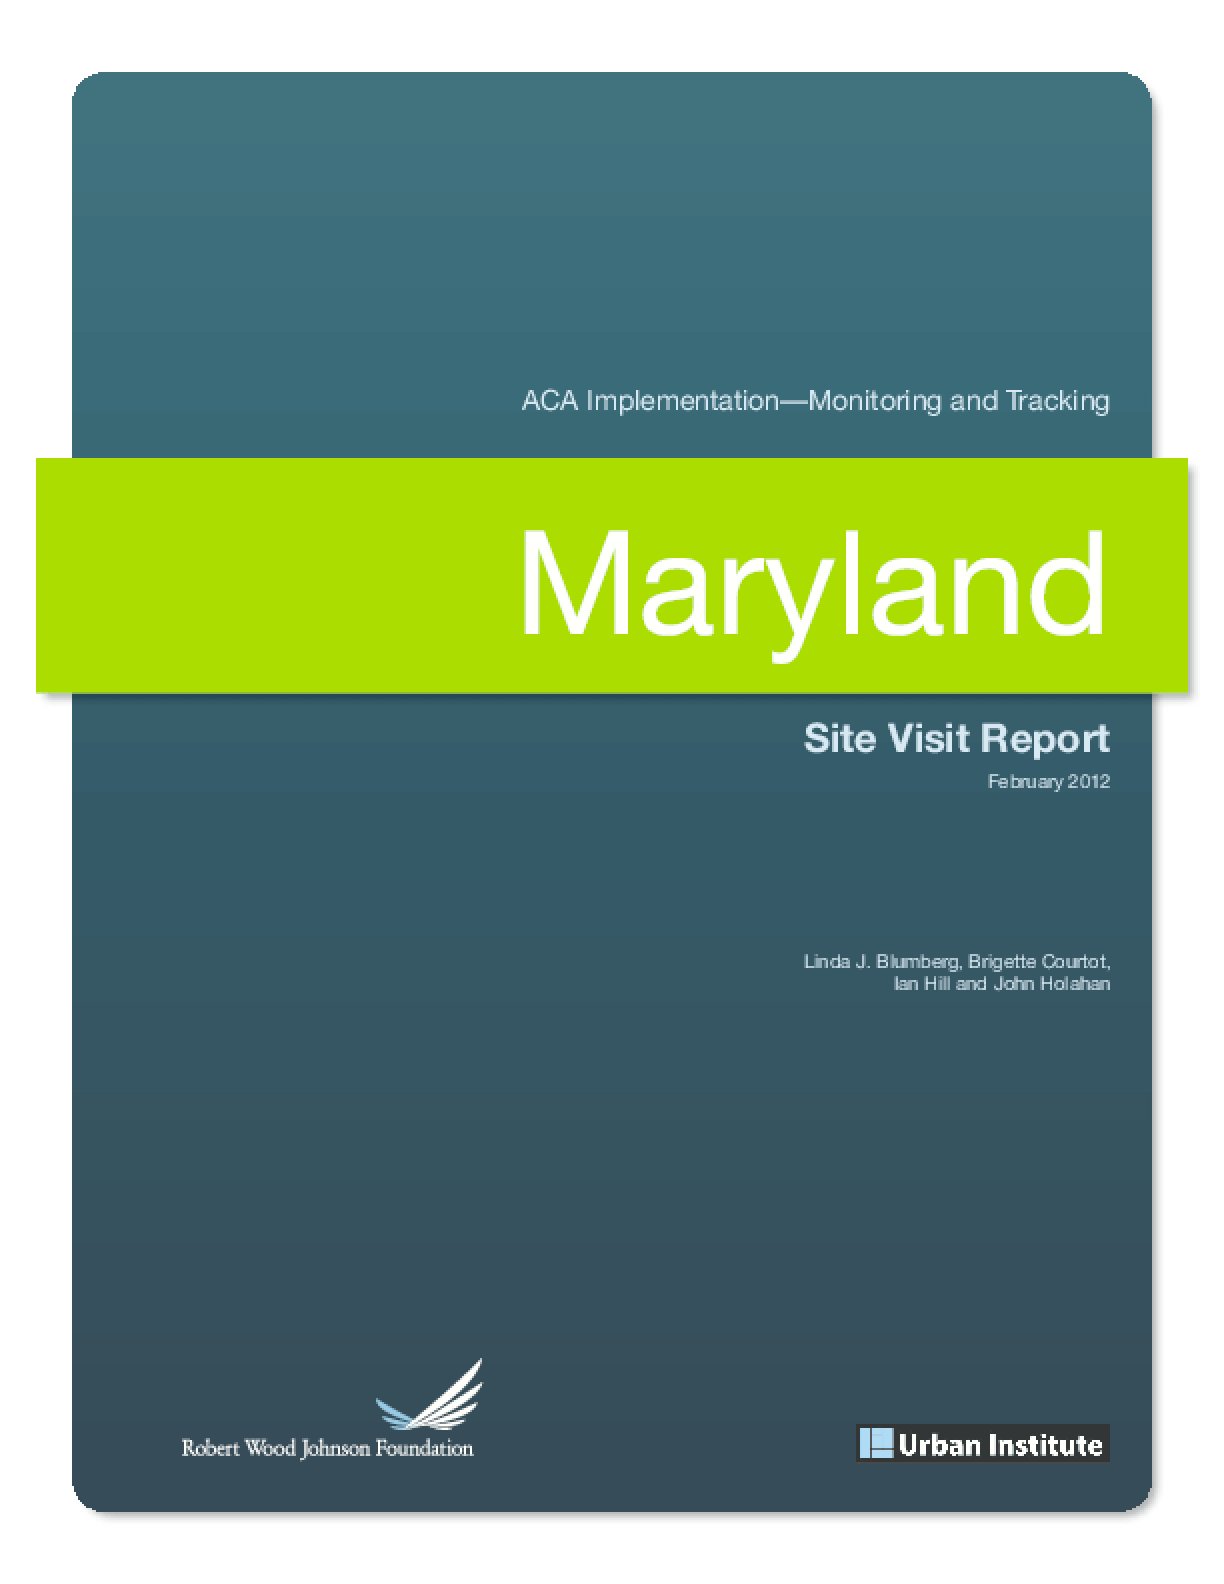 ACA Implementation Monitoring and Tracking: Maryland Site Visit Report